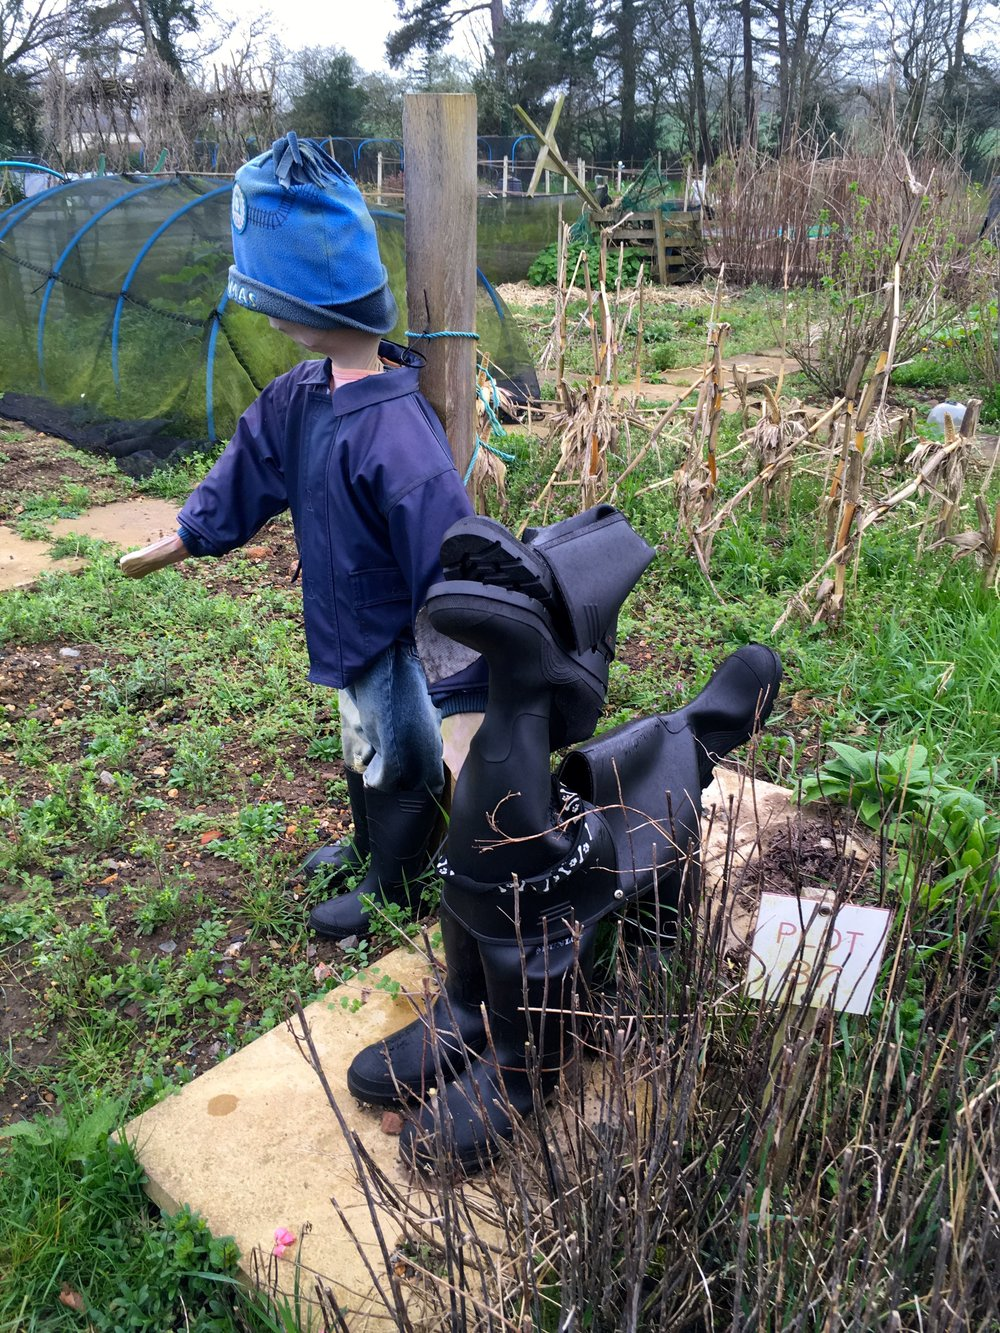 A boy and his welly dog at the allotments at Kingston Lacy